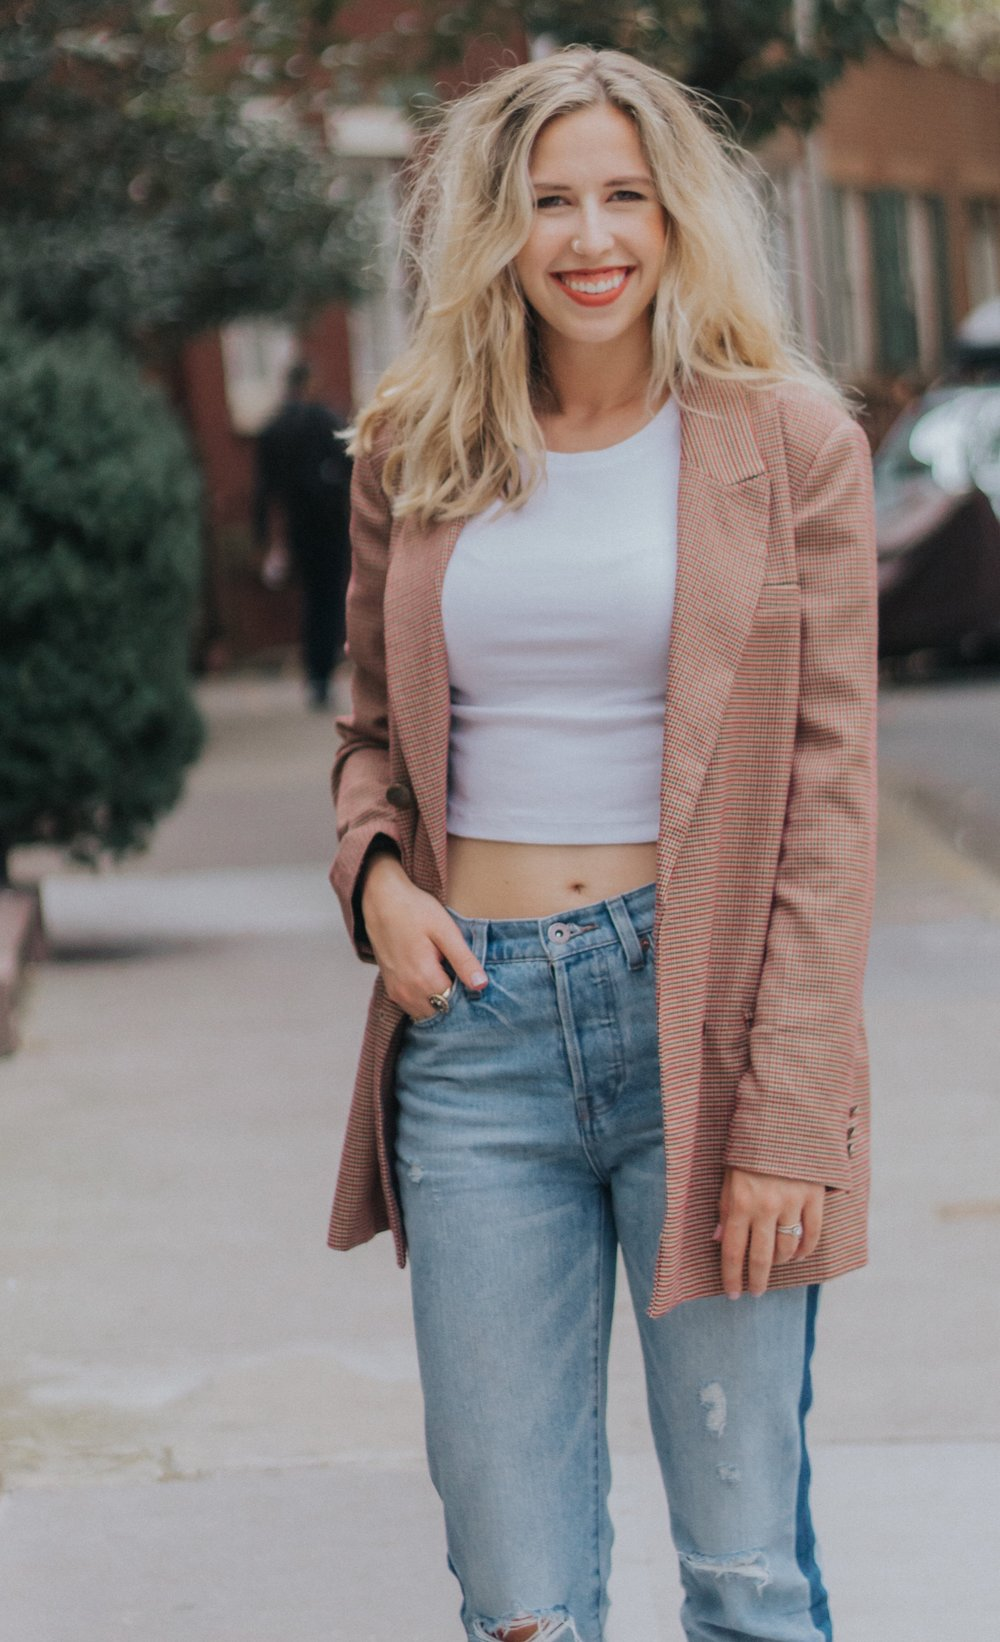 Simple Fall Look (Blazer + Crop Top) | The Simplistic Chic